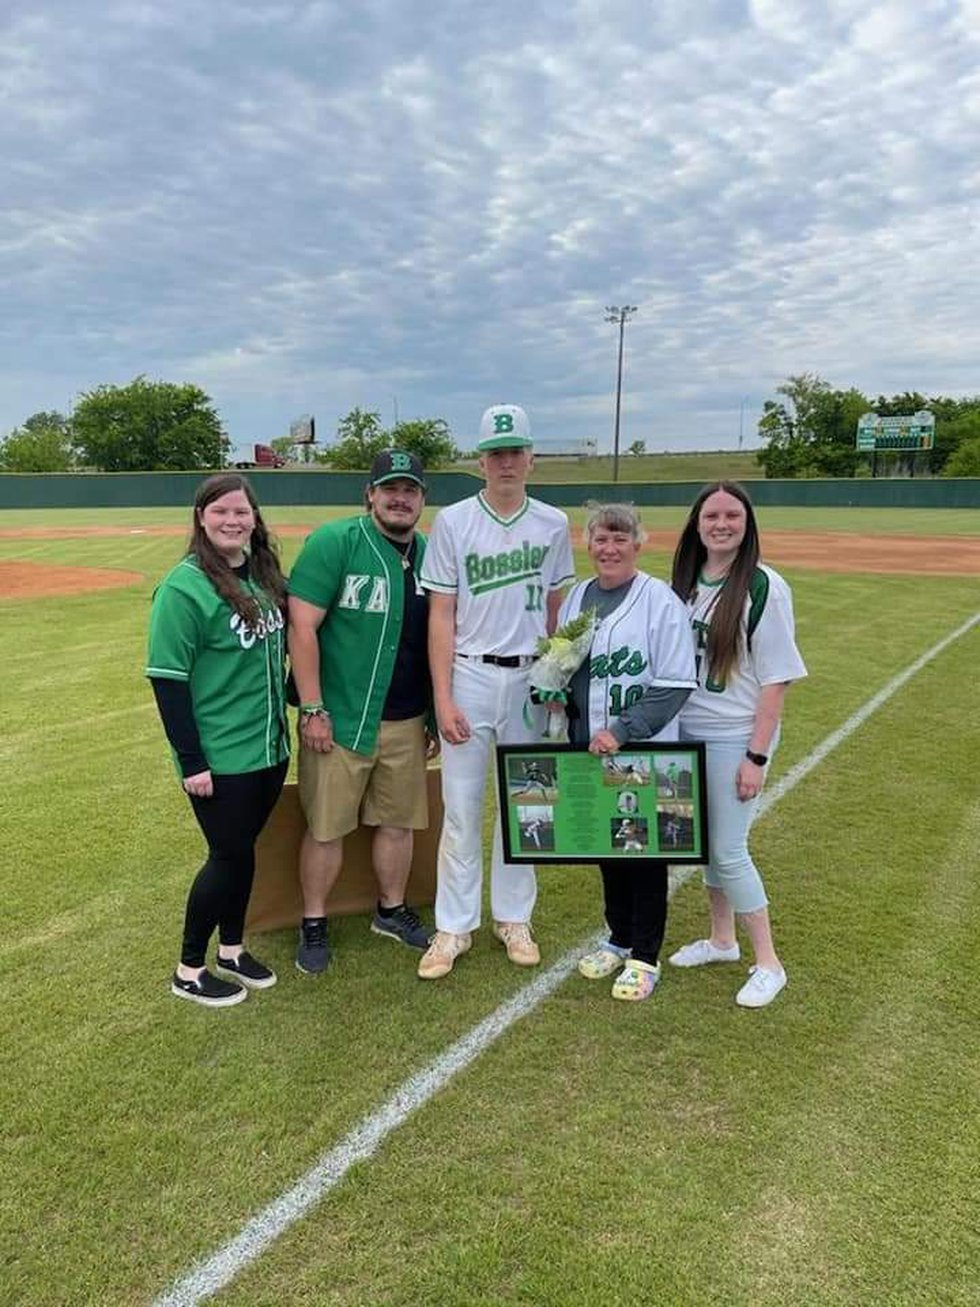 Coleman Beeson with his family on senior night for the baseball team.